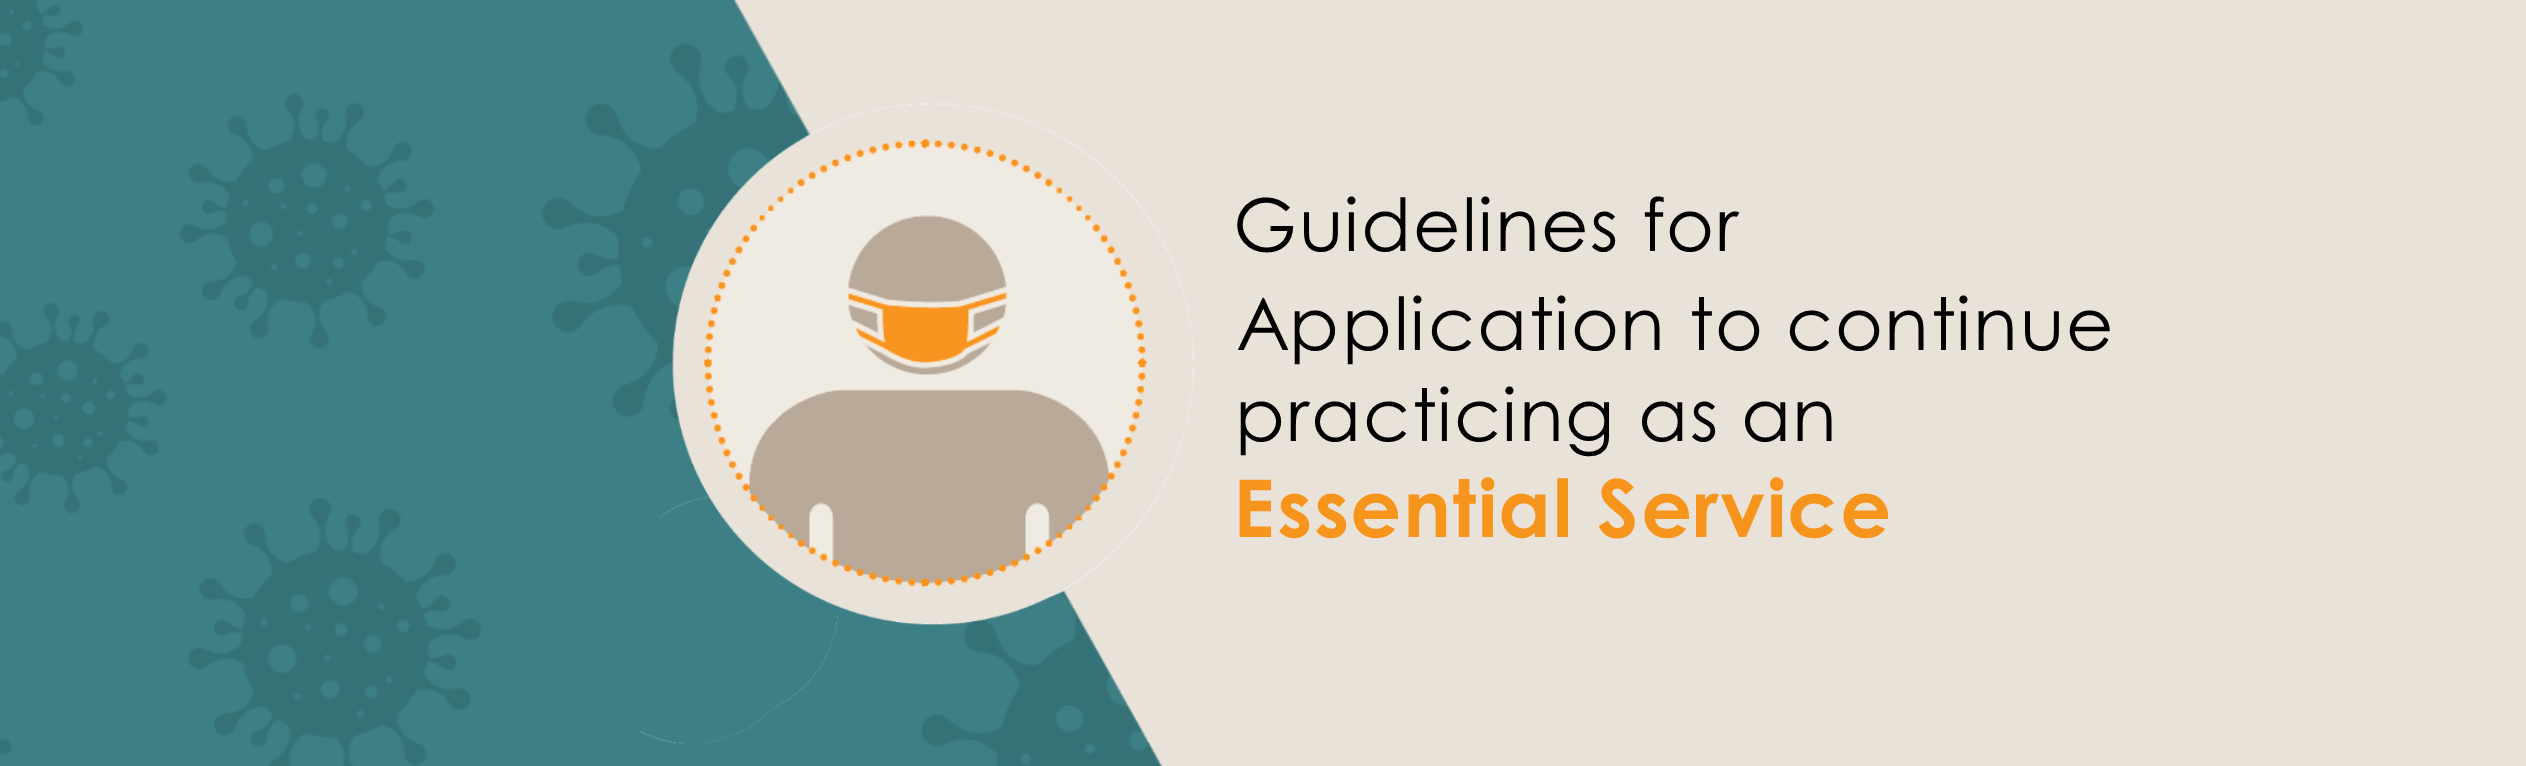 Covid-19 – Guidelines for application to continue practicing as an Essential Service